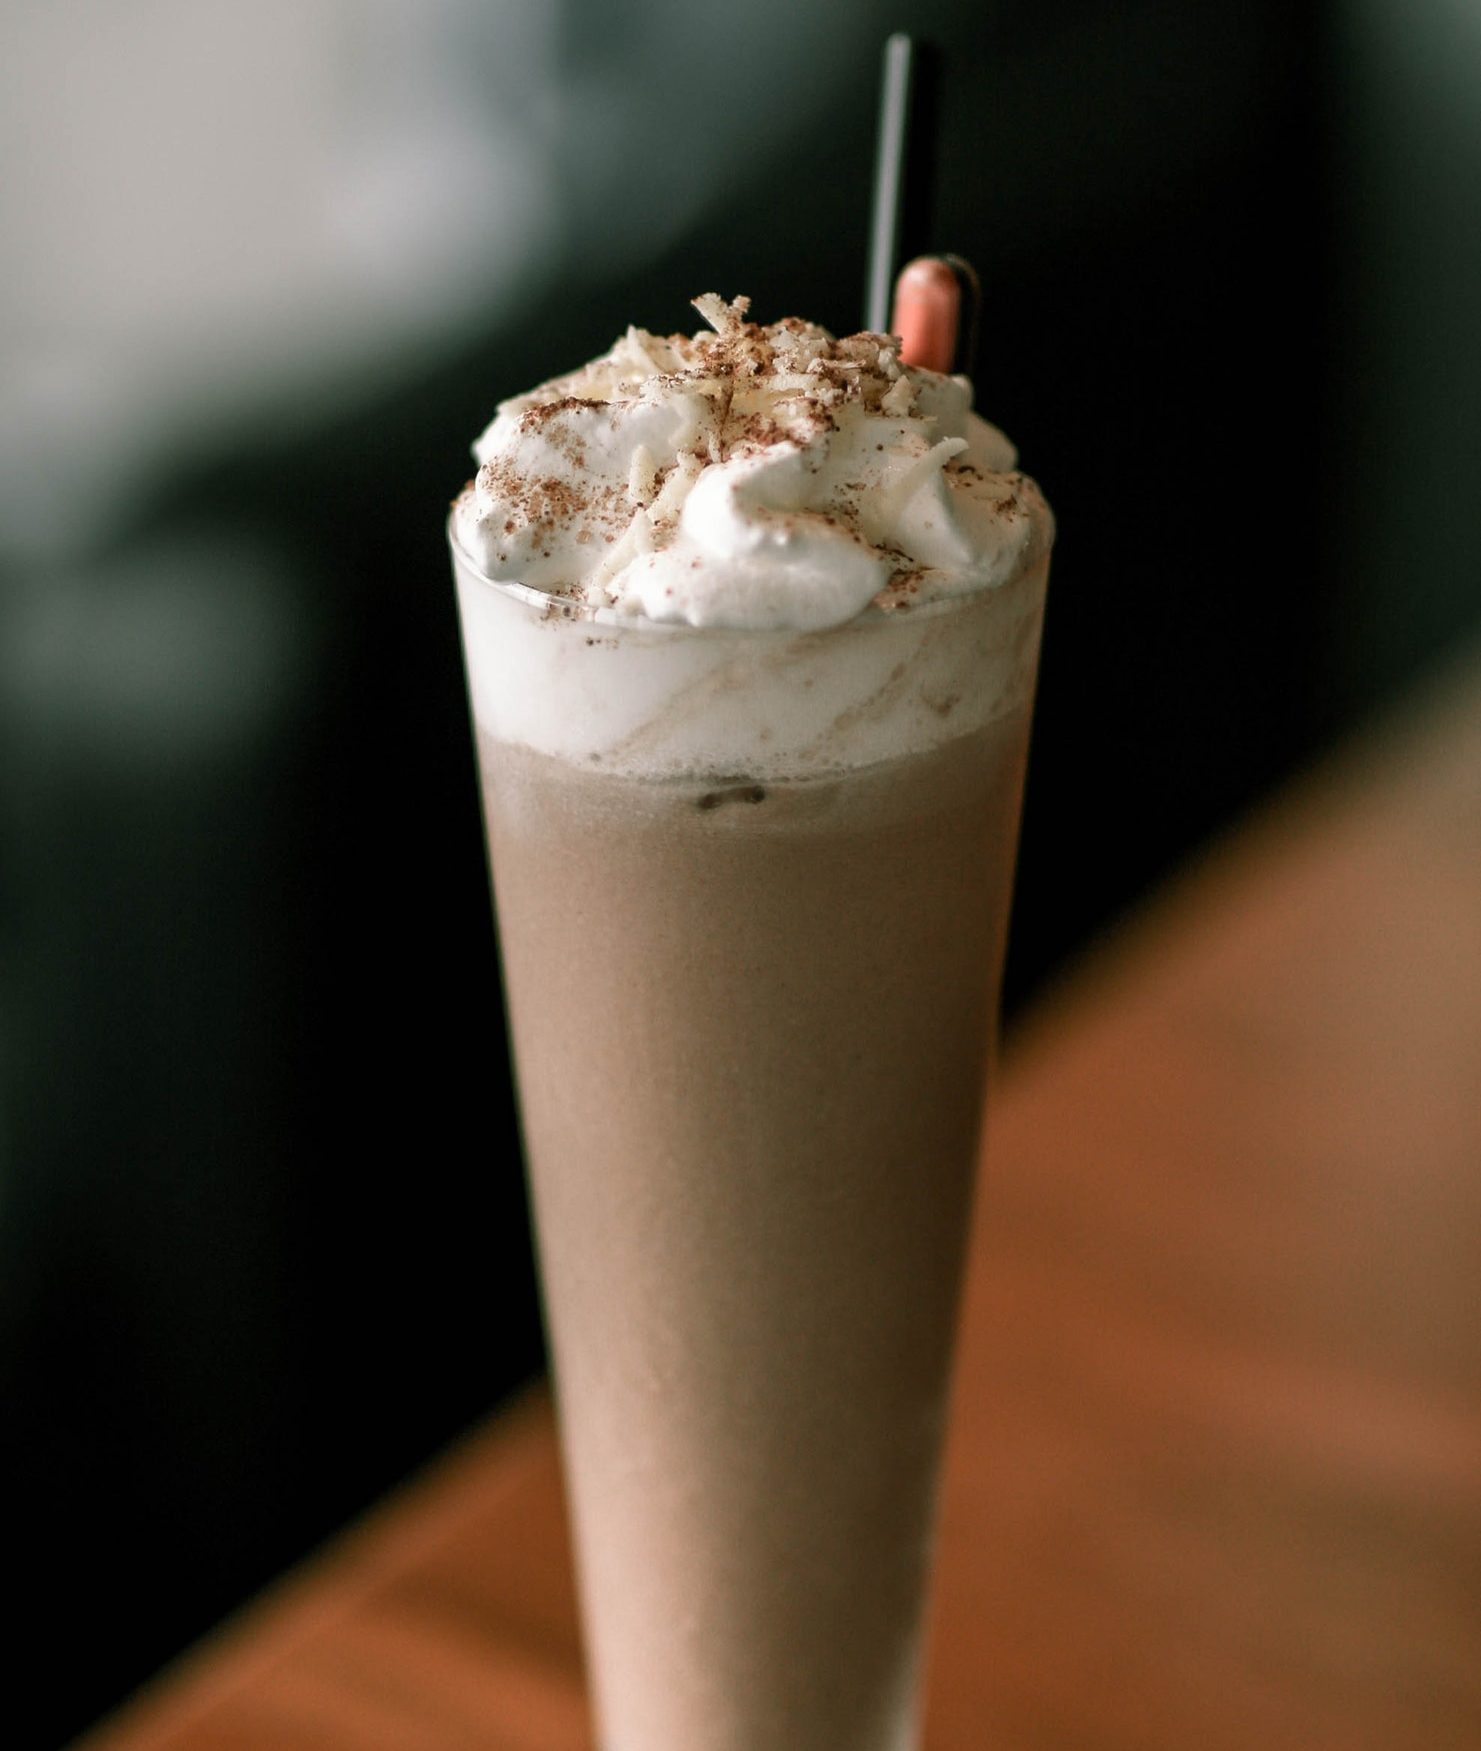 milkshake serving in a glass